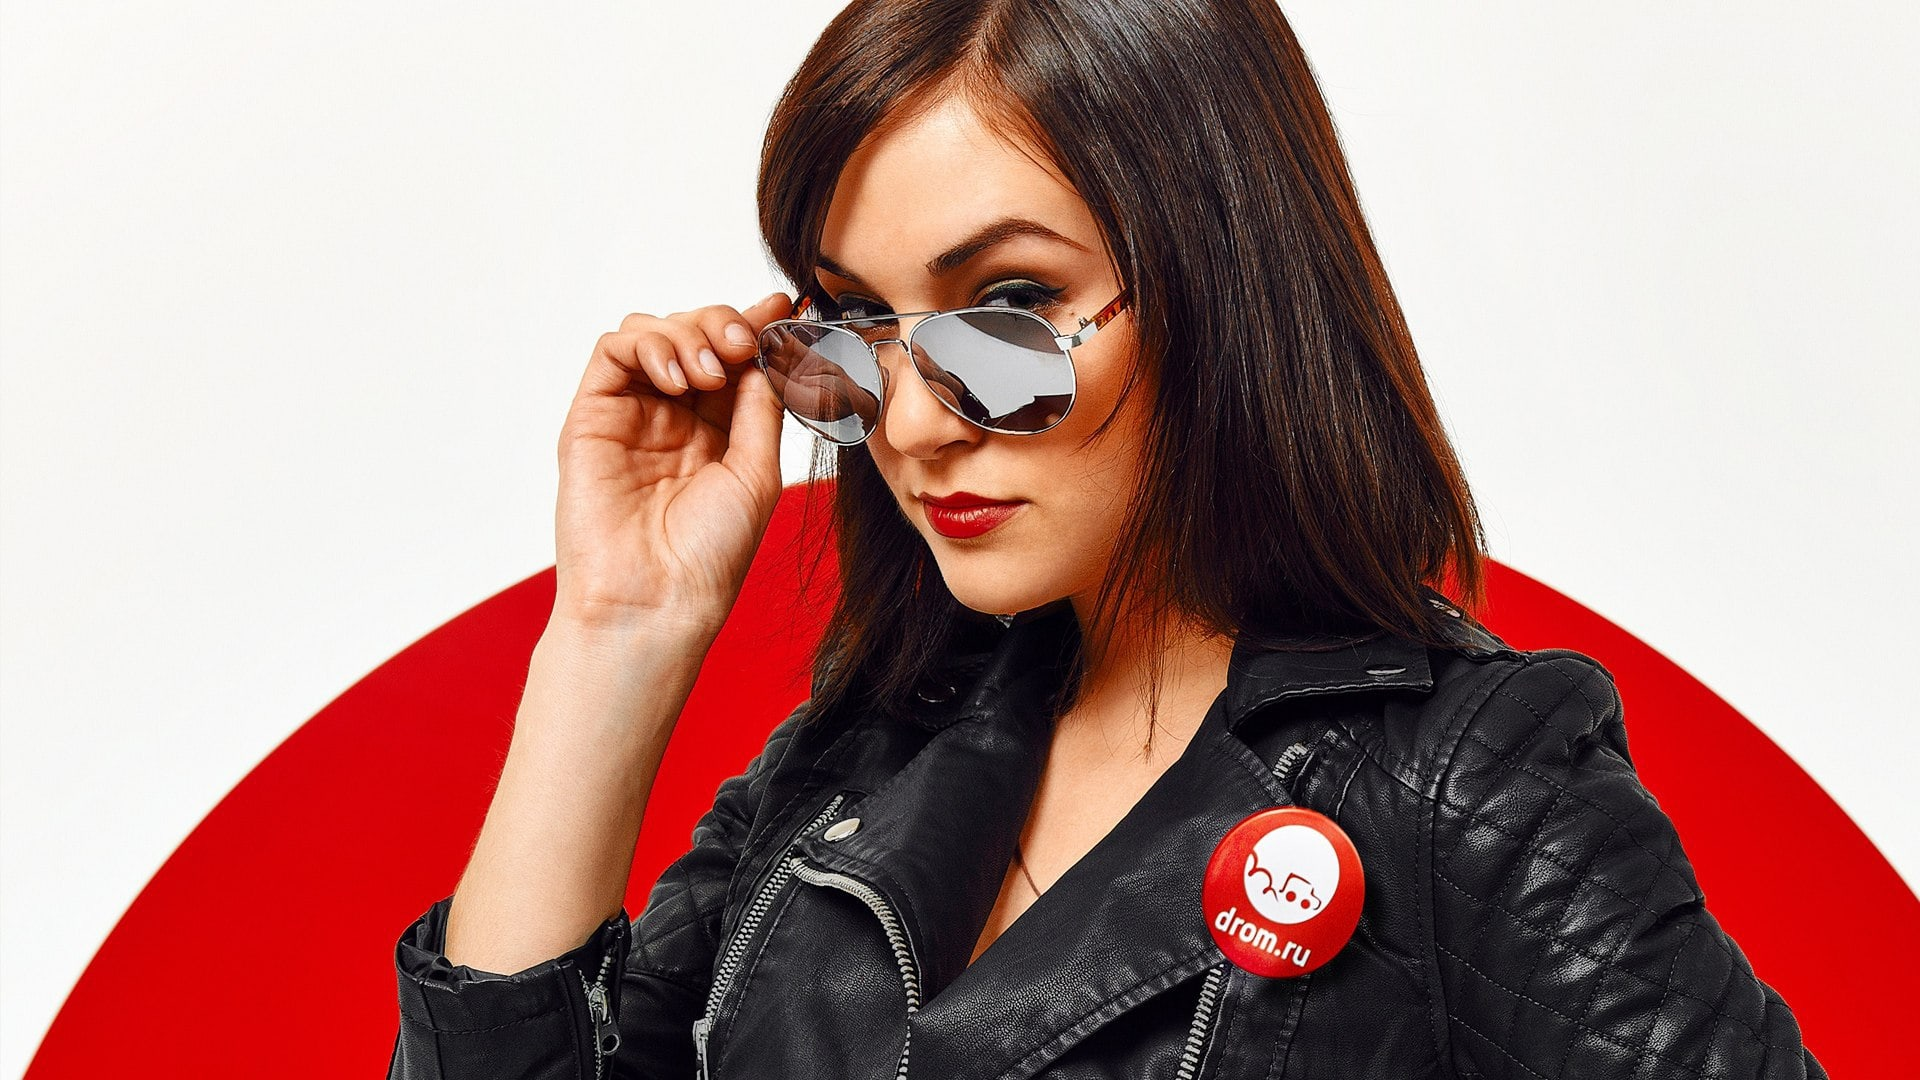 Sasha Grey Full hd wallpapers